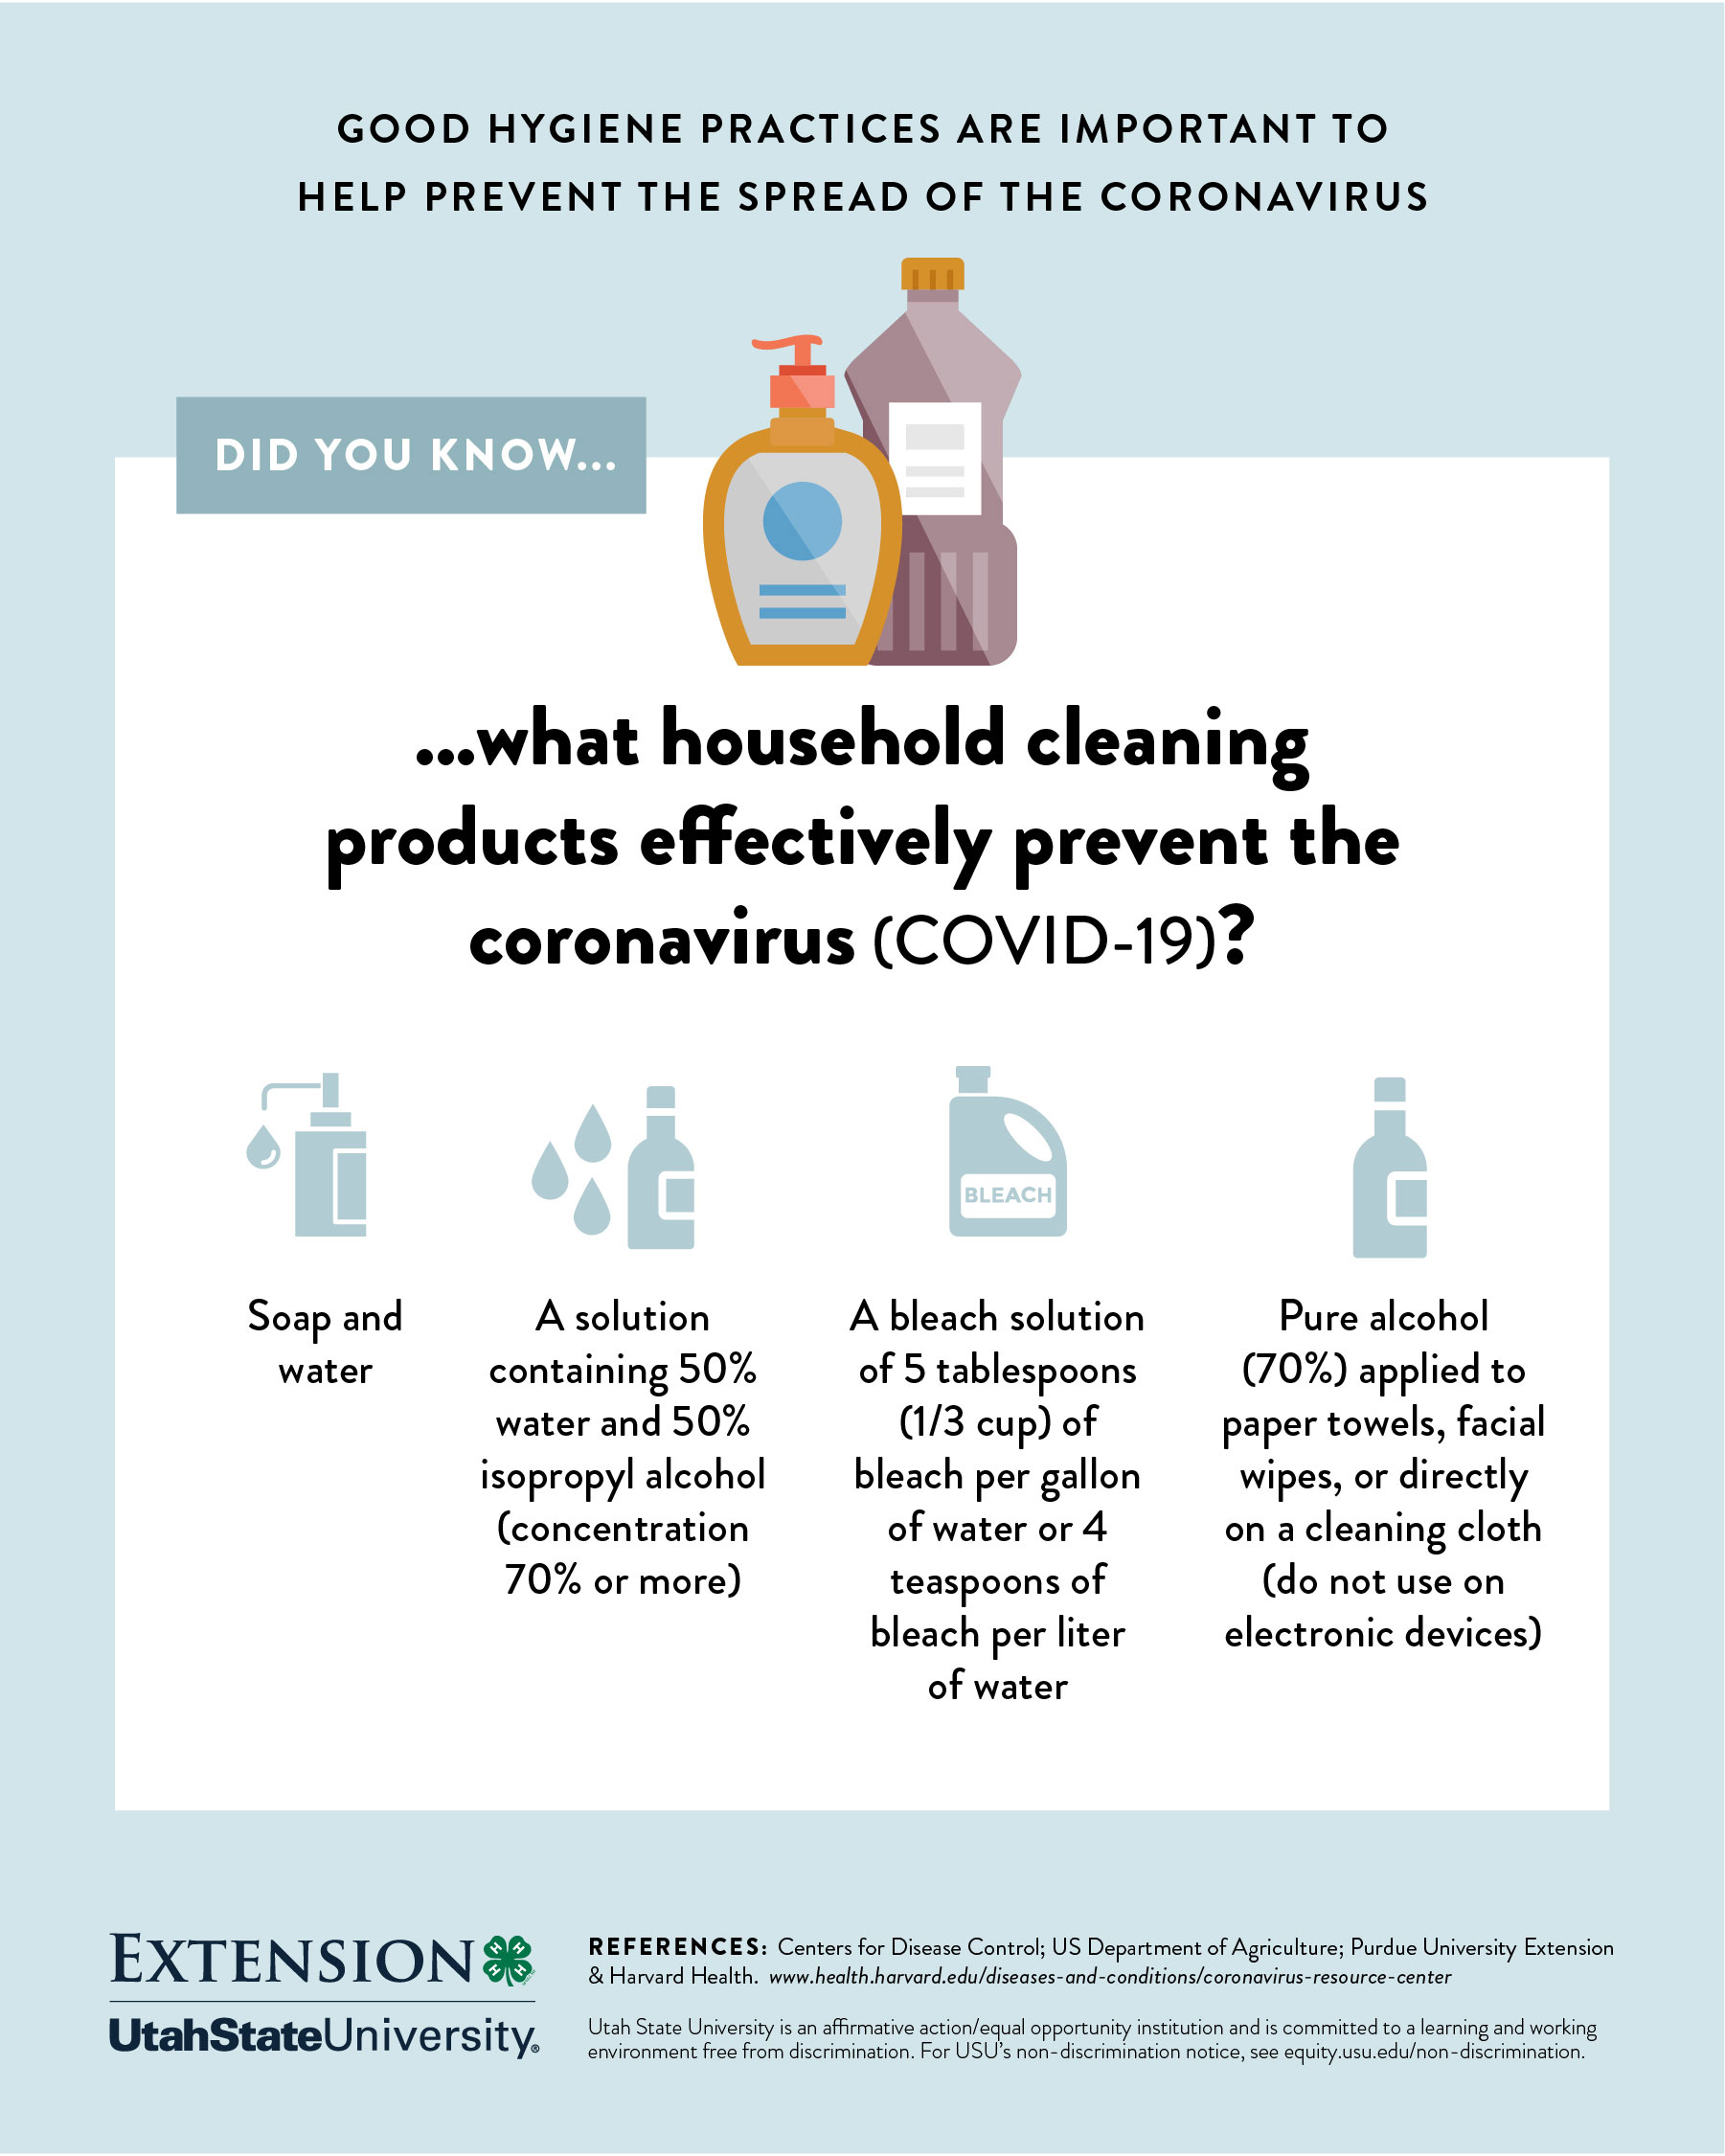 Cleaning home products